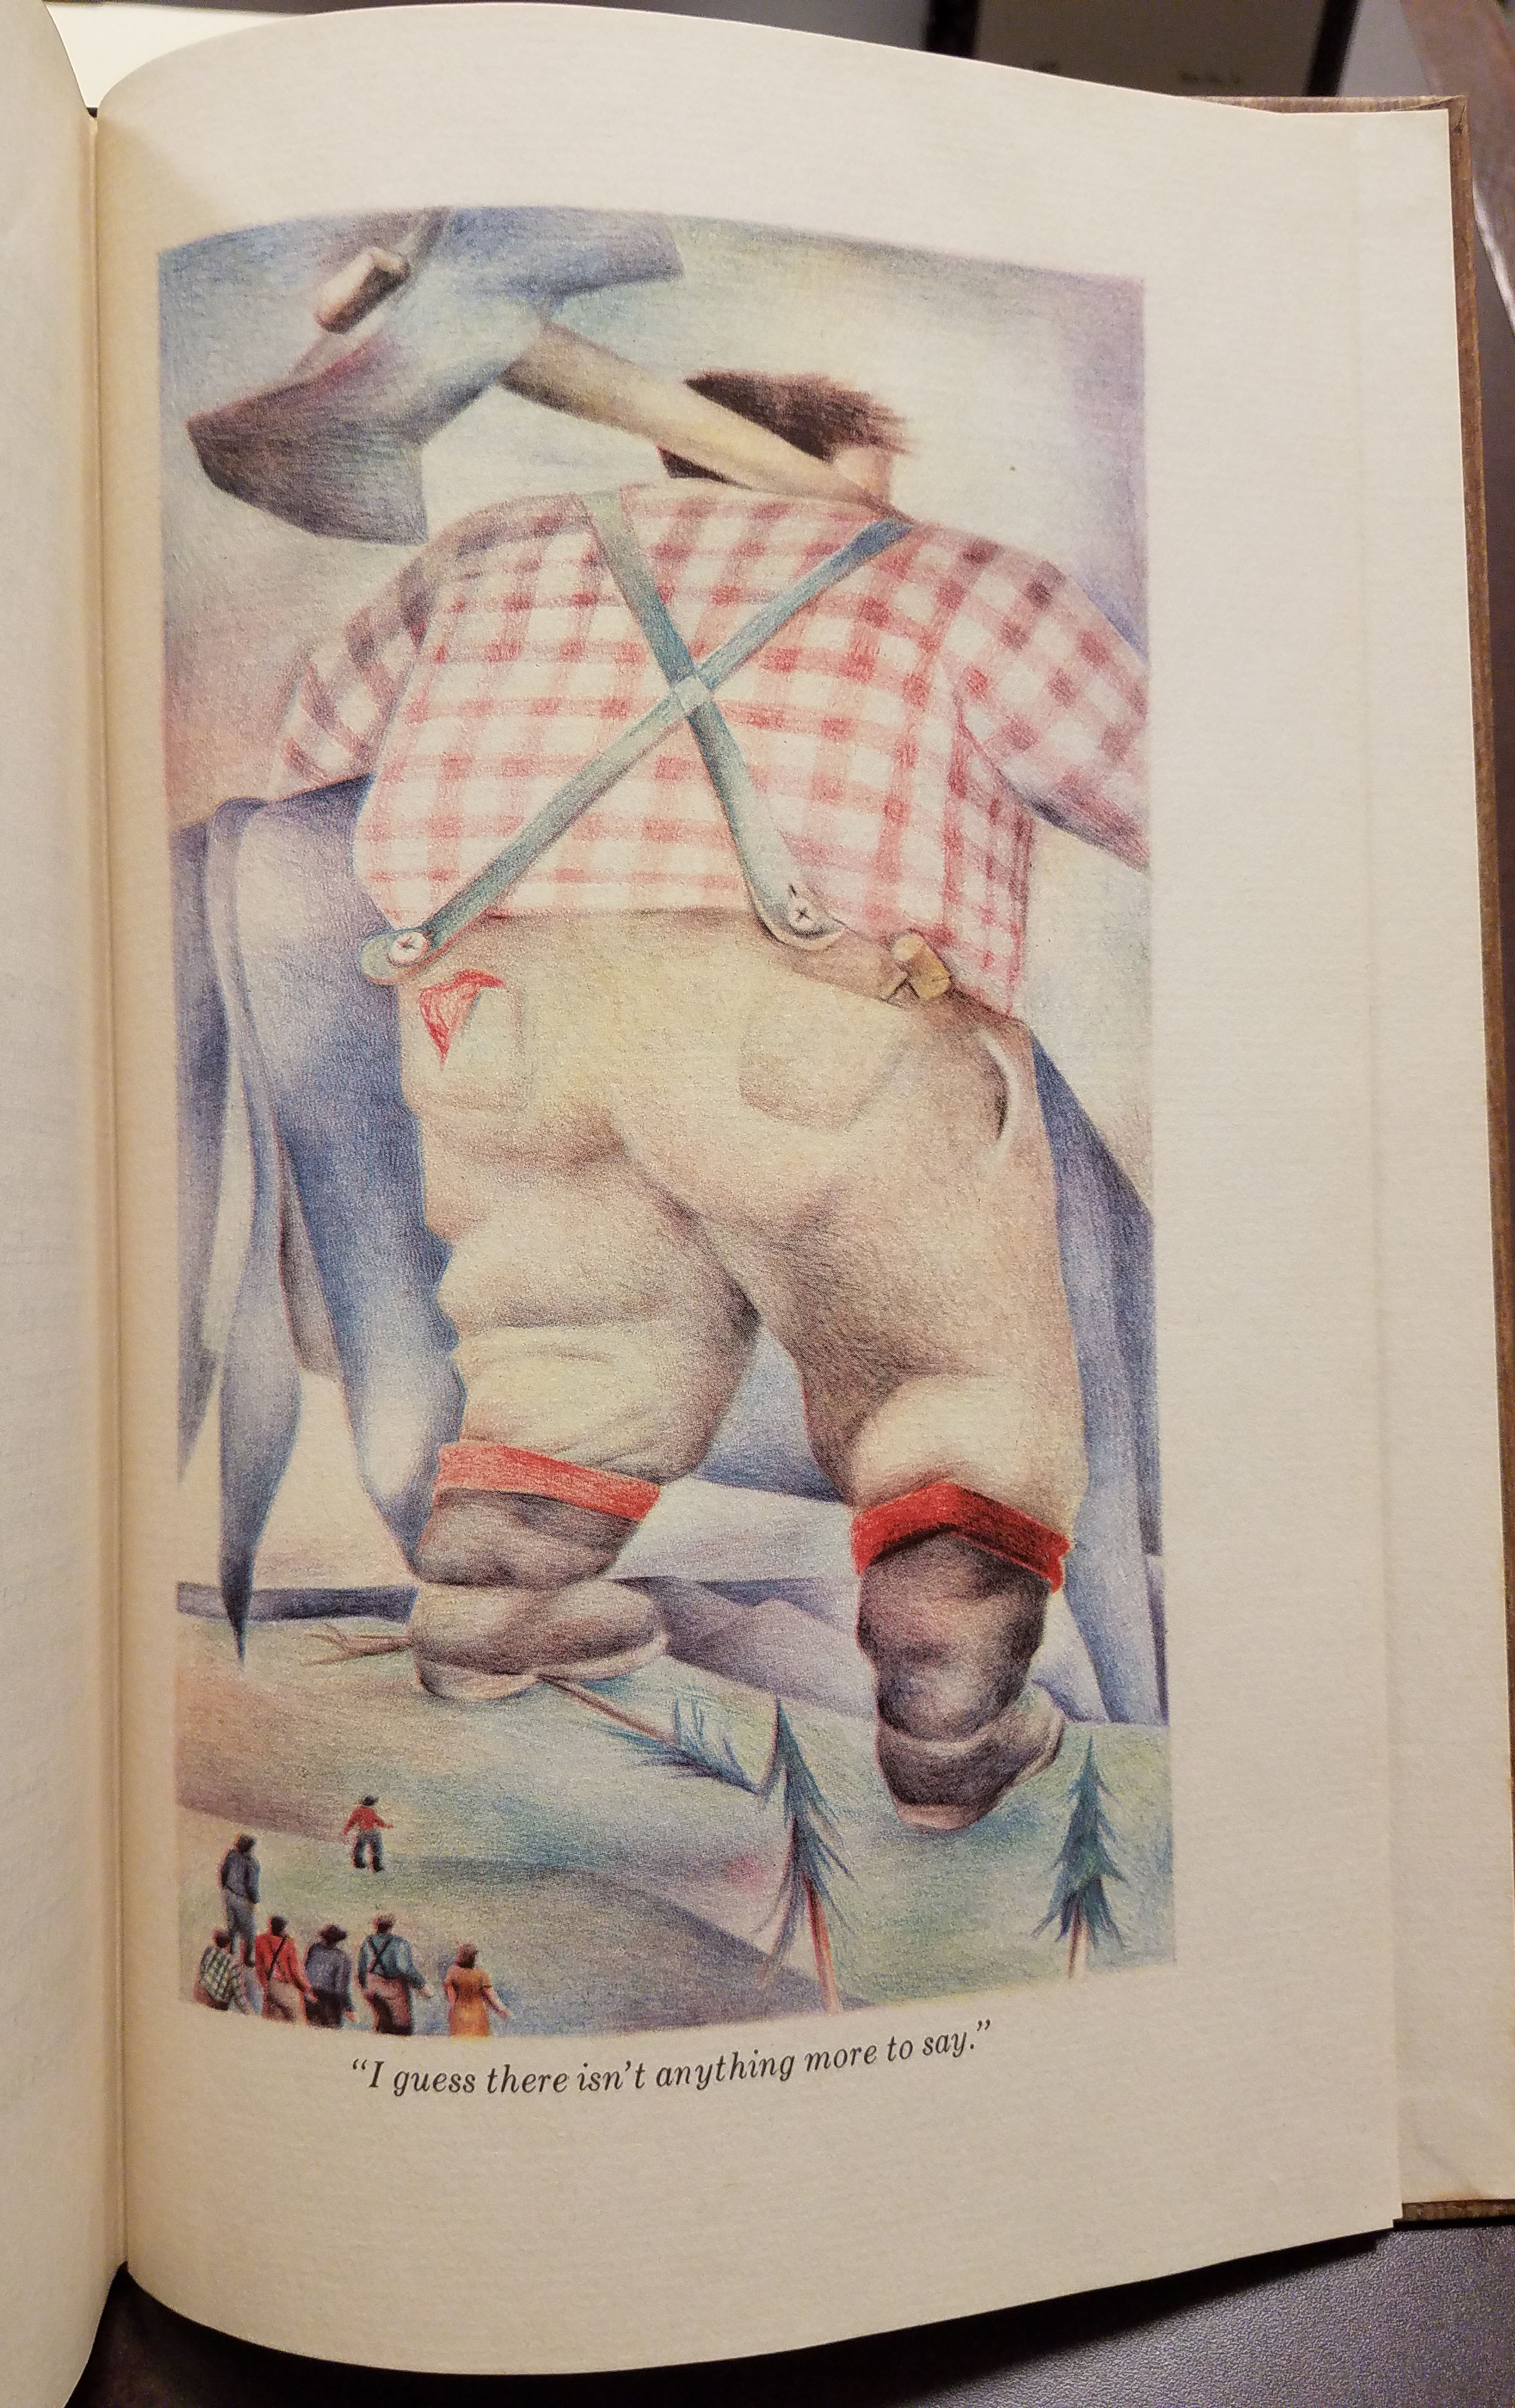 """Paul Bunyan and Babe the Blue Ox leaving. Text reads: """"I guess there isn't anything more to say."""""""